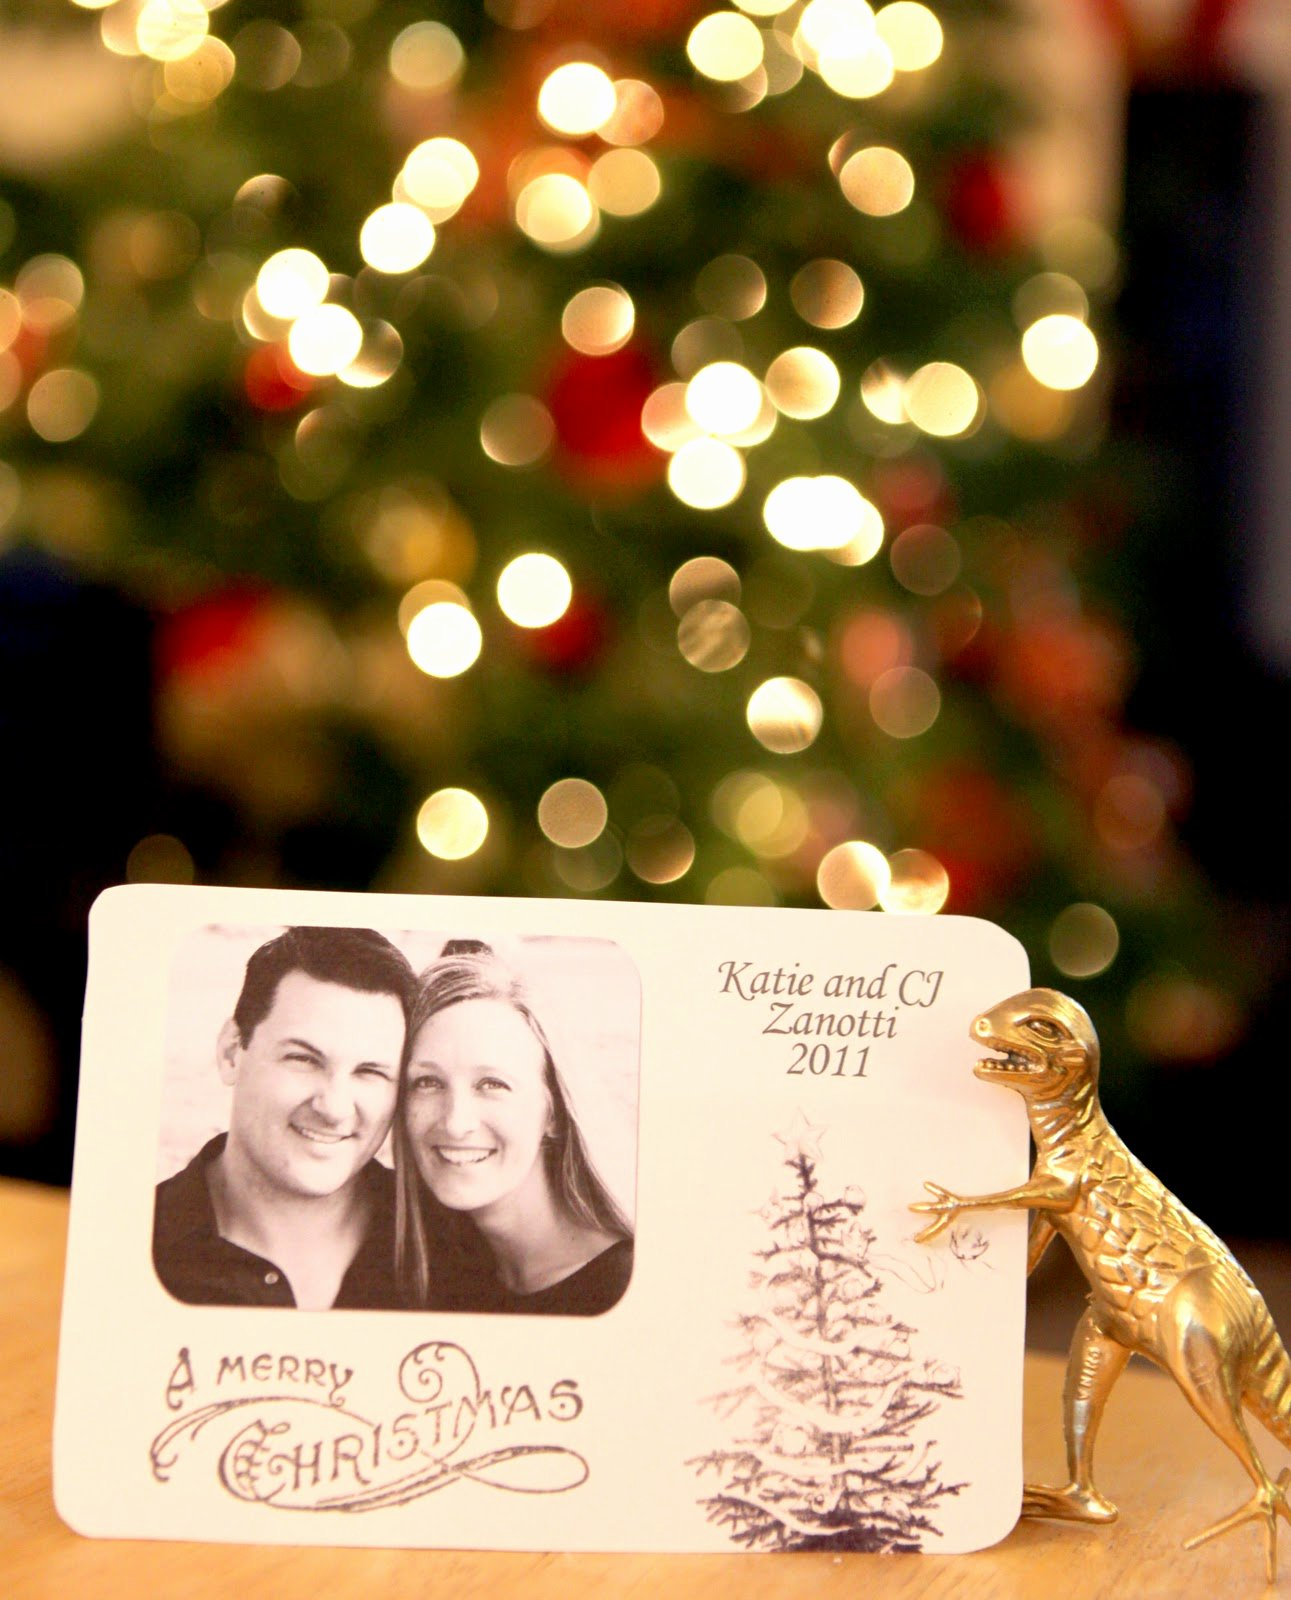 Free Christmas Photo Templates Lovely Chloe Moore Graphy the Blog Free Christmas Card